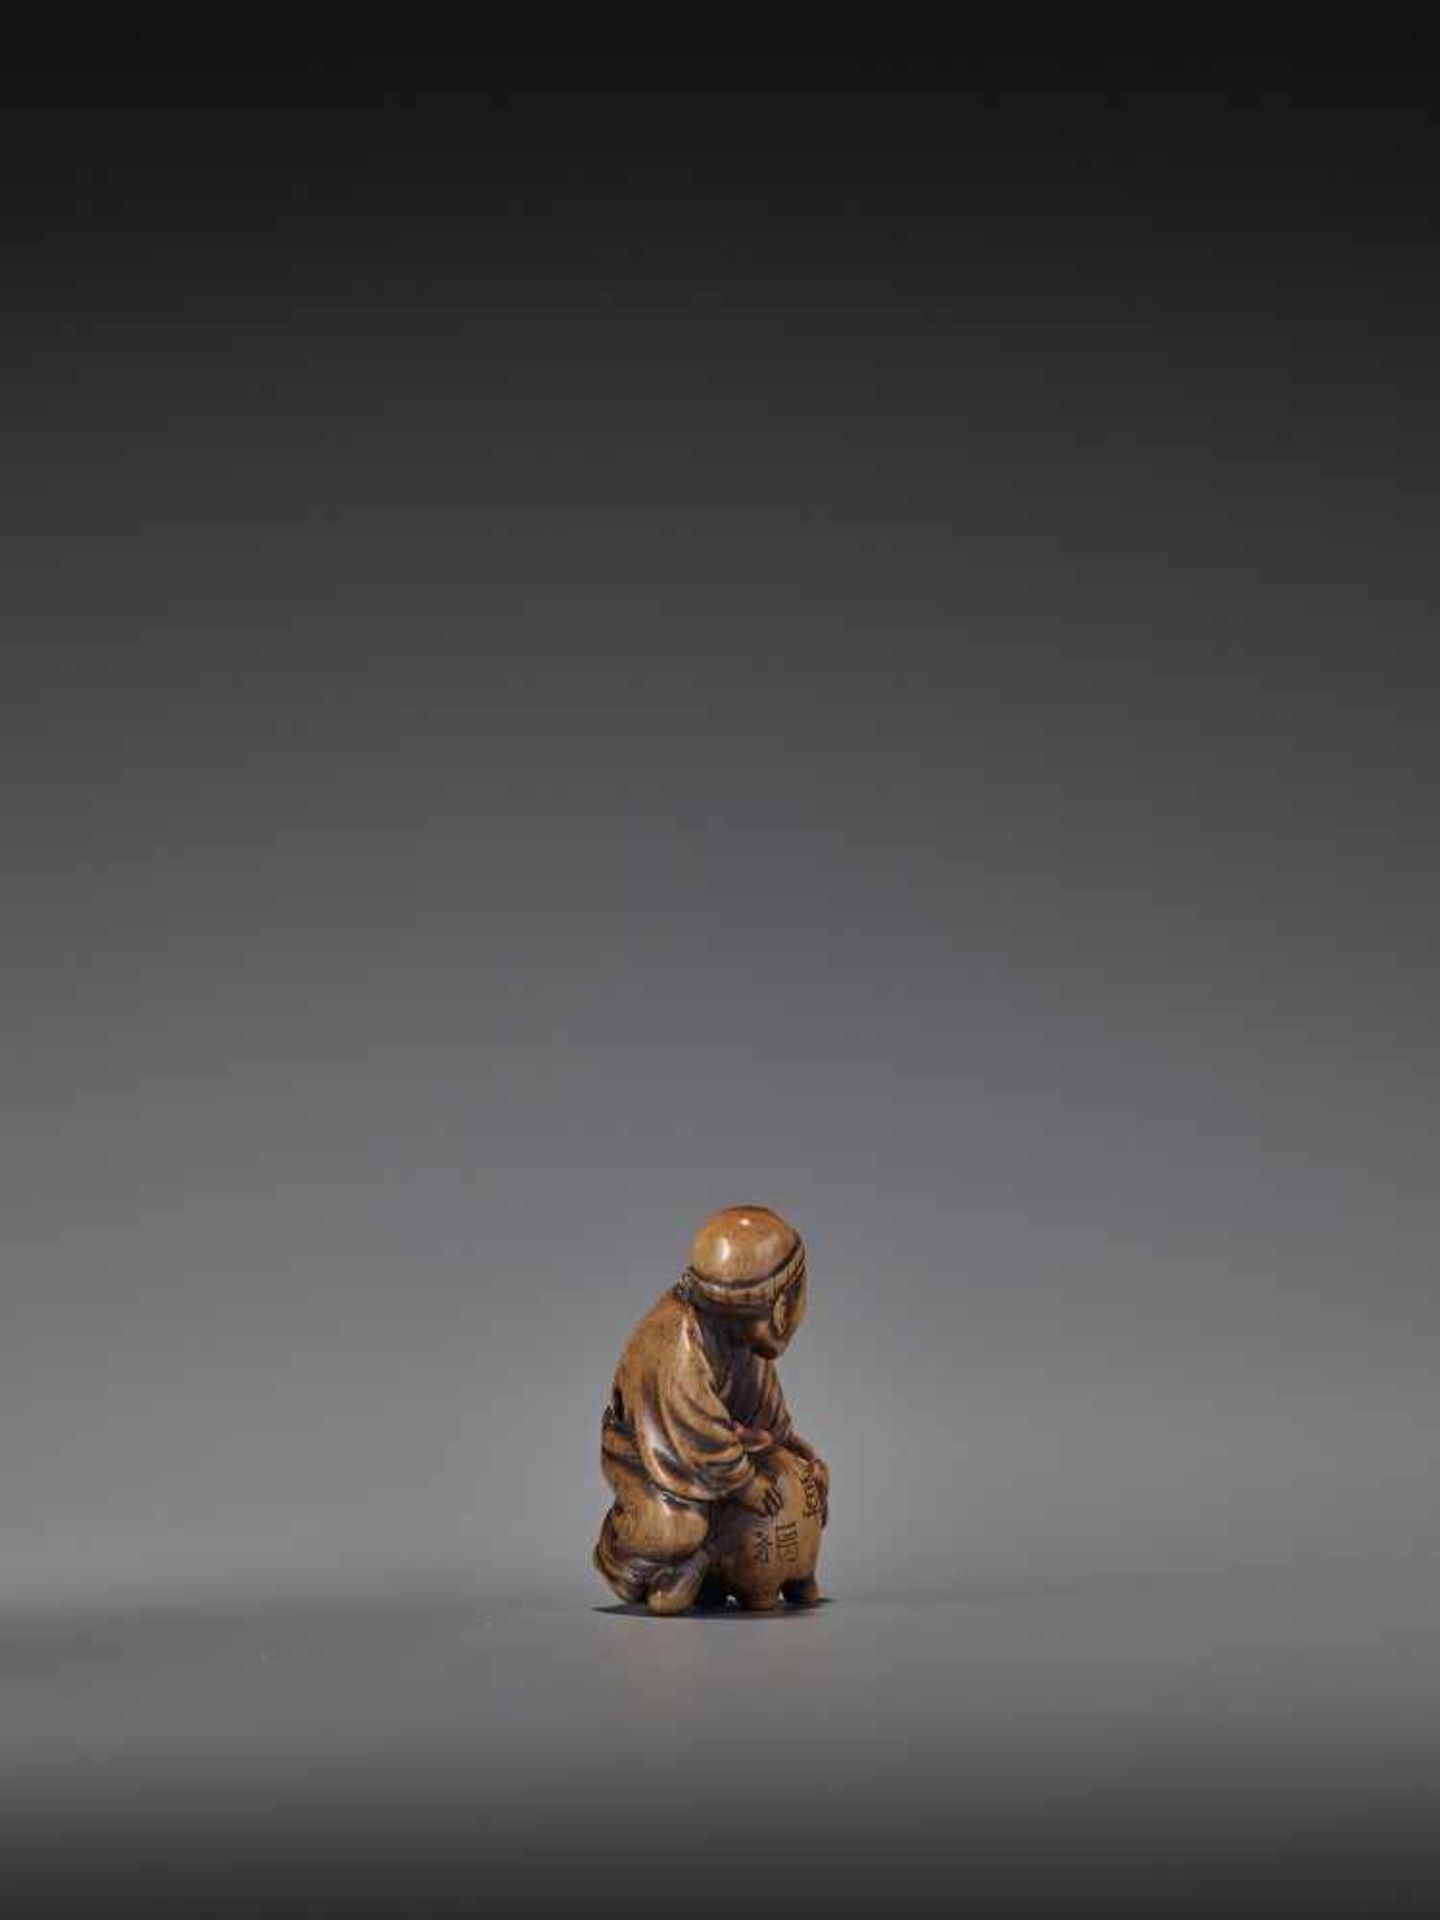 HIDEHISA: A RARE WOOD NETSUKE OF A THIEF STEALING THE MAGIC TANUKI KETTLE By Hidehisa, signed - Image 7 of 12